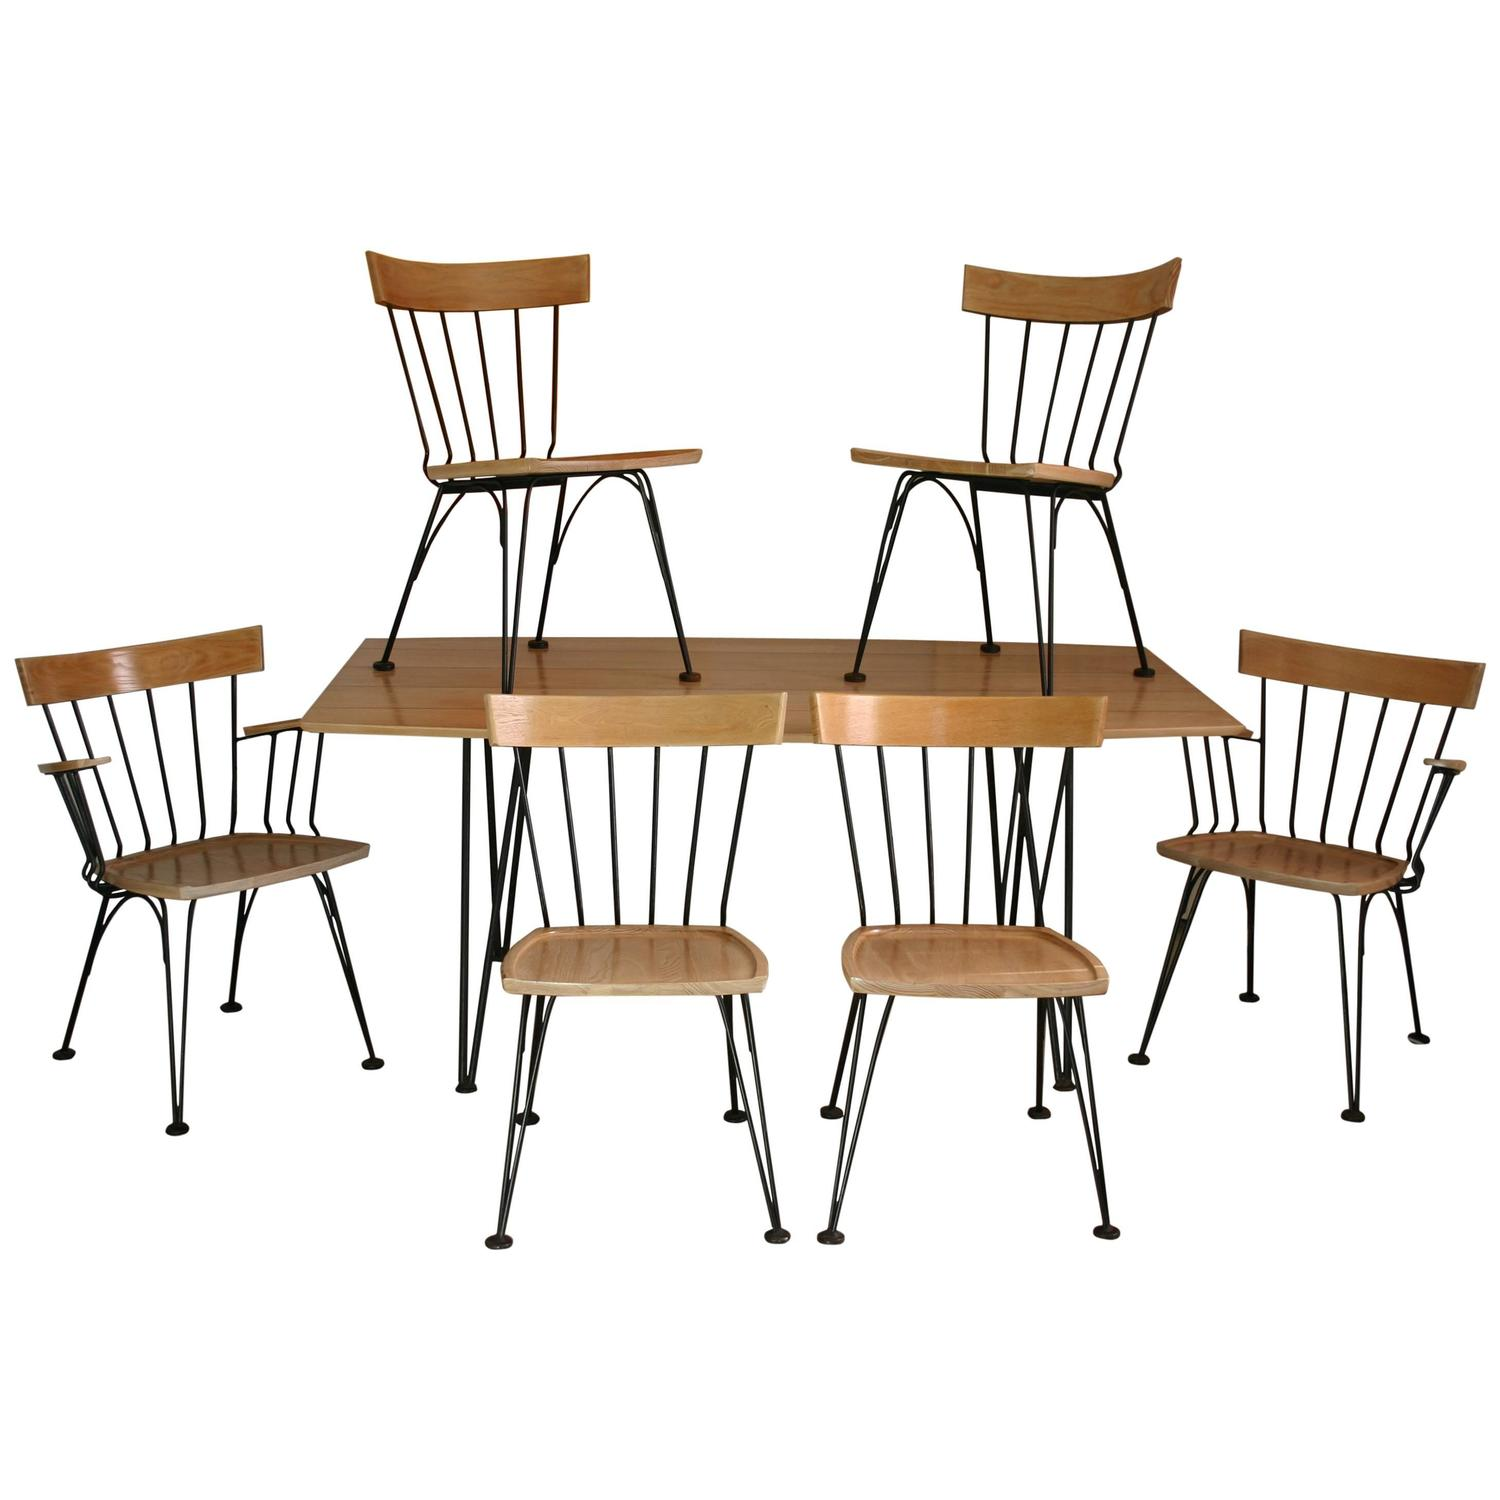 Mid Century Modern MCM Table And Six Chair Set By Lyman Woodard At 1stdibs